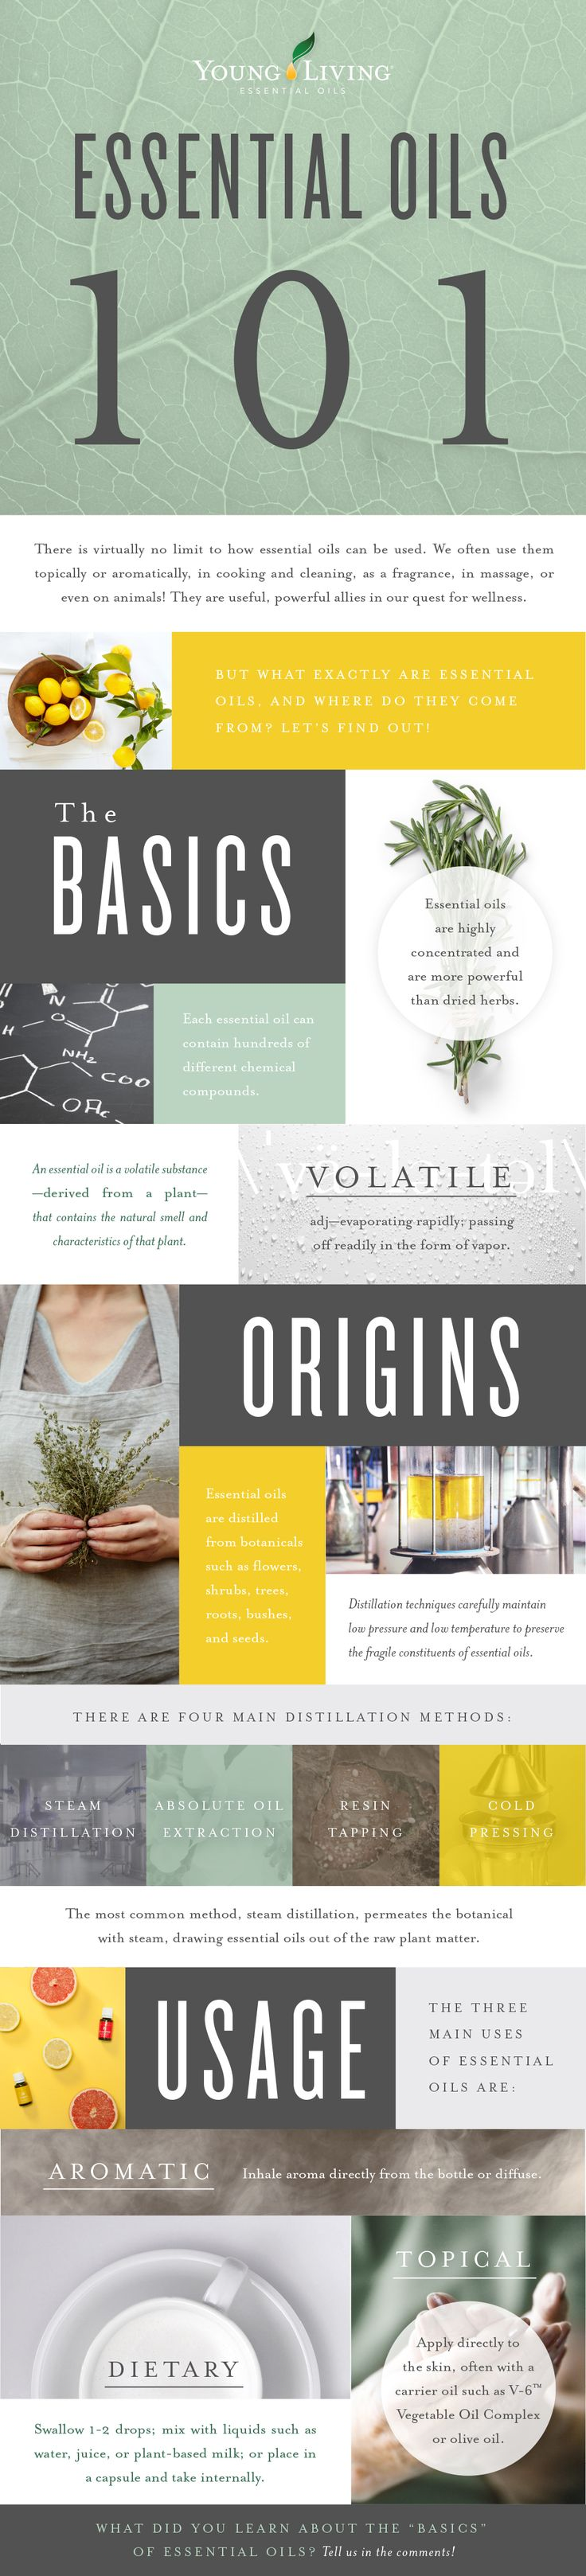 Essential Oils 101: The Basics